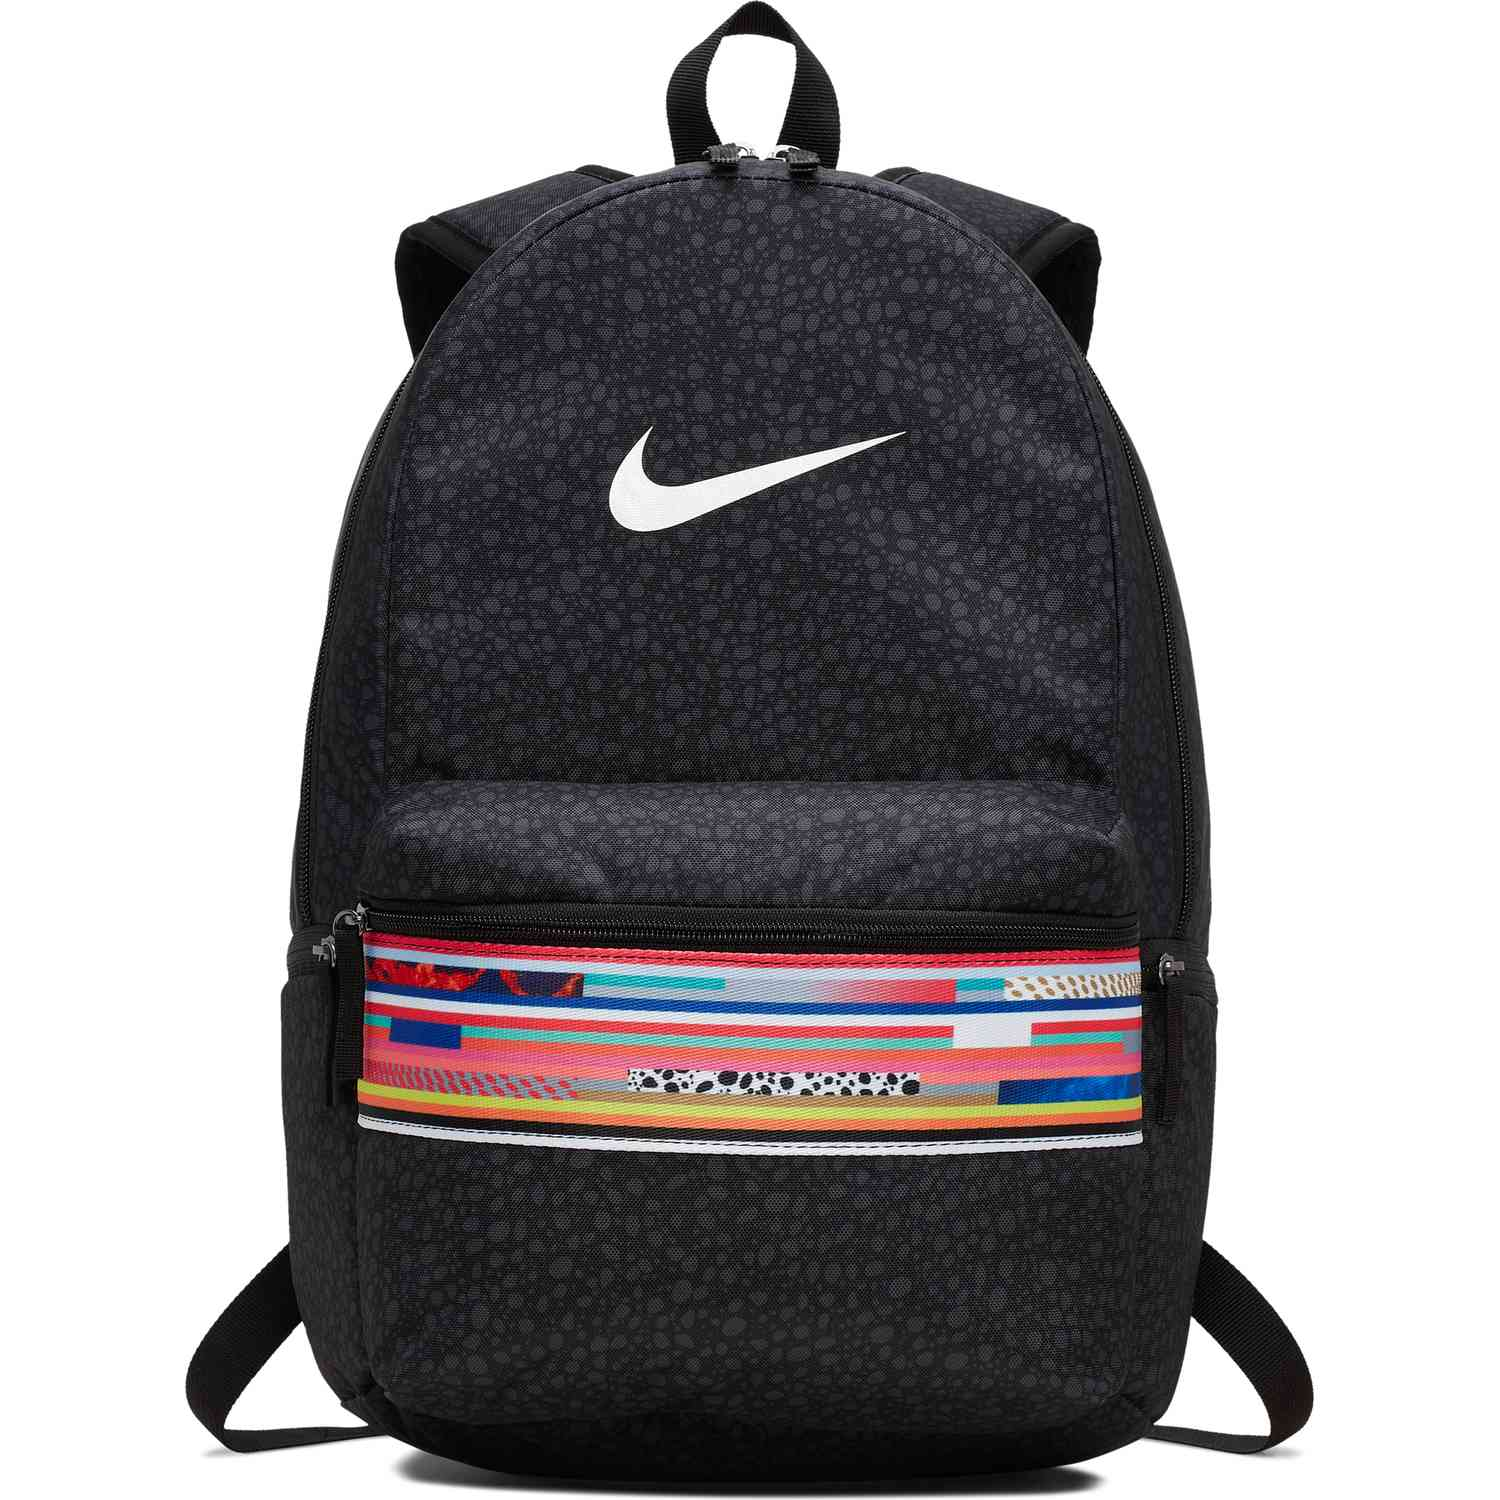 72e26dc82 Nike Kids Backpack - Level Up - SoccerPro